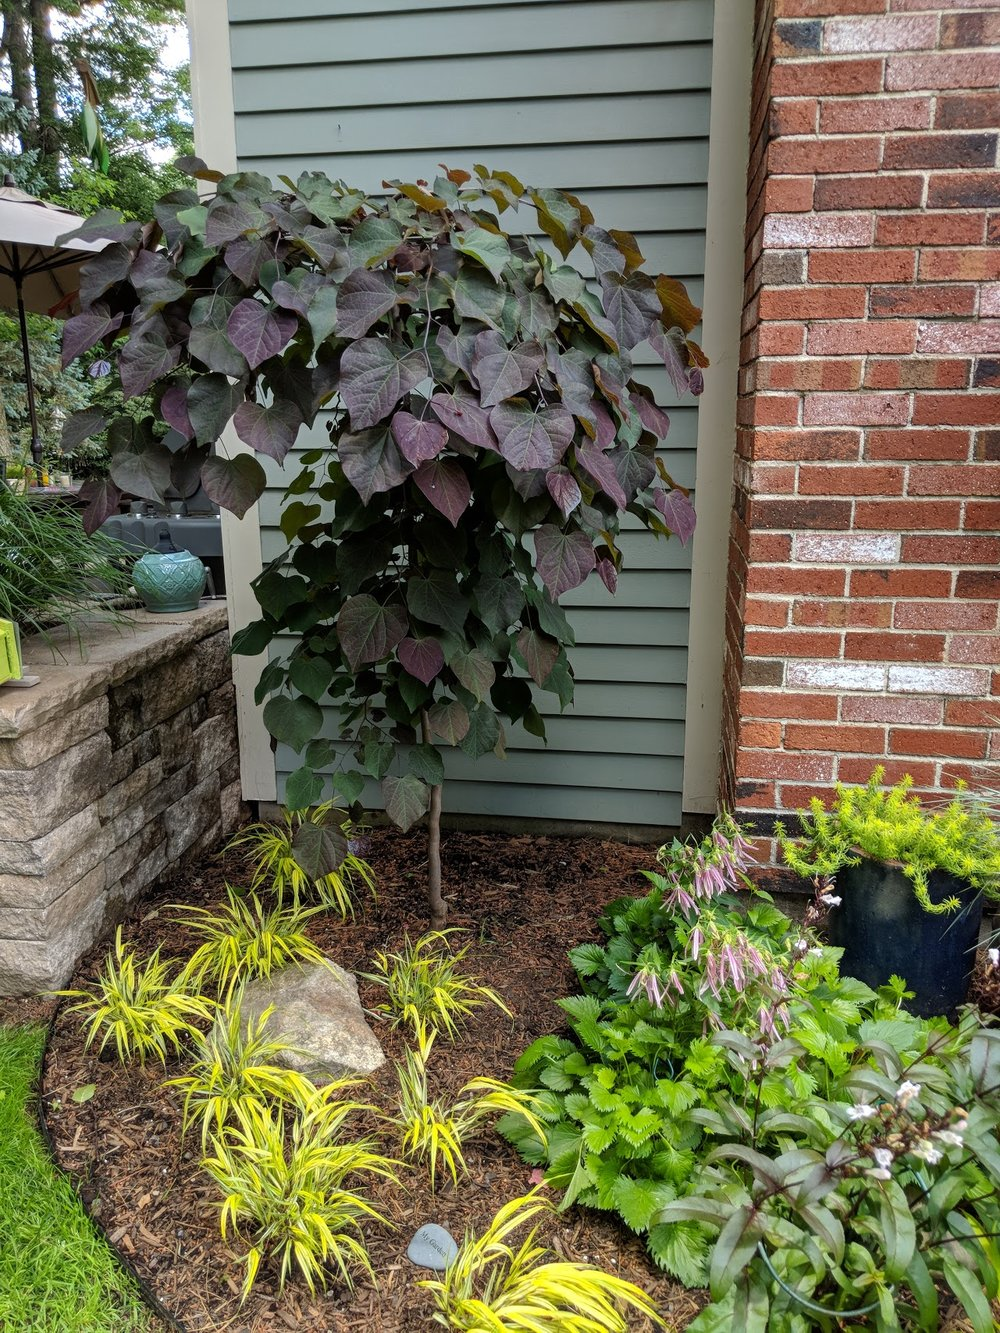 'Ruby Falls' redbud and 'Pink Octopus' campanula have settled nicely into their new home.